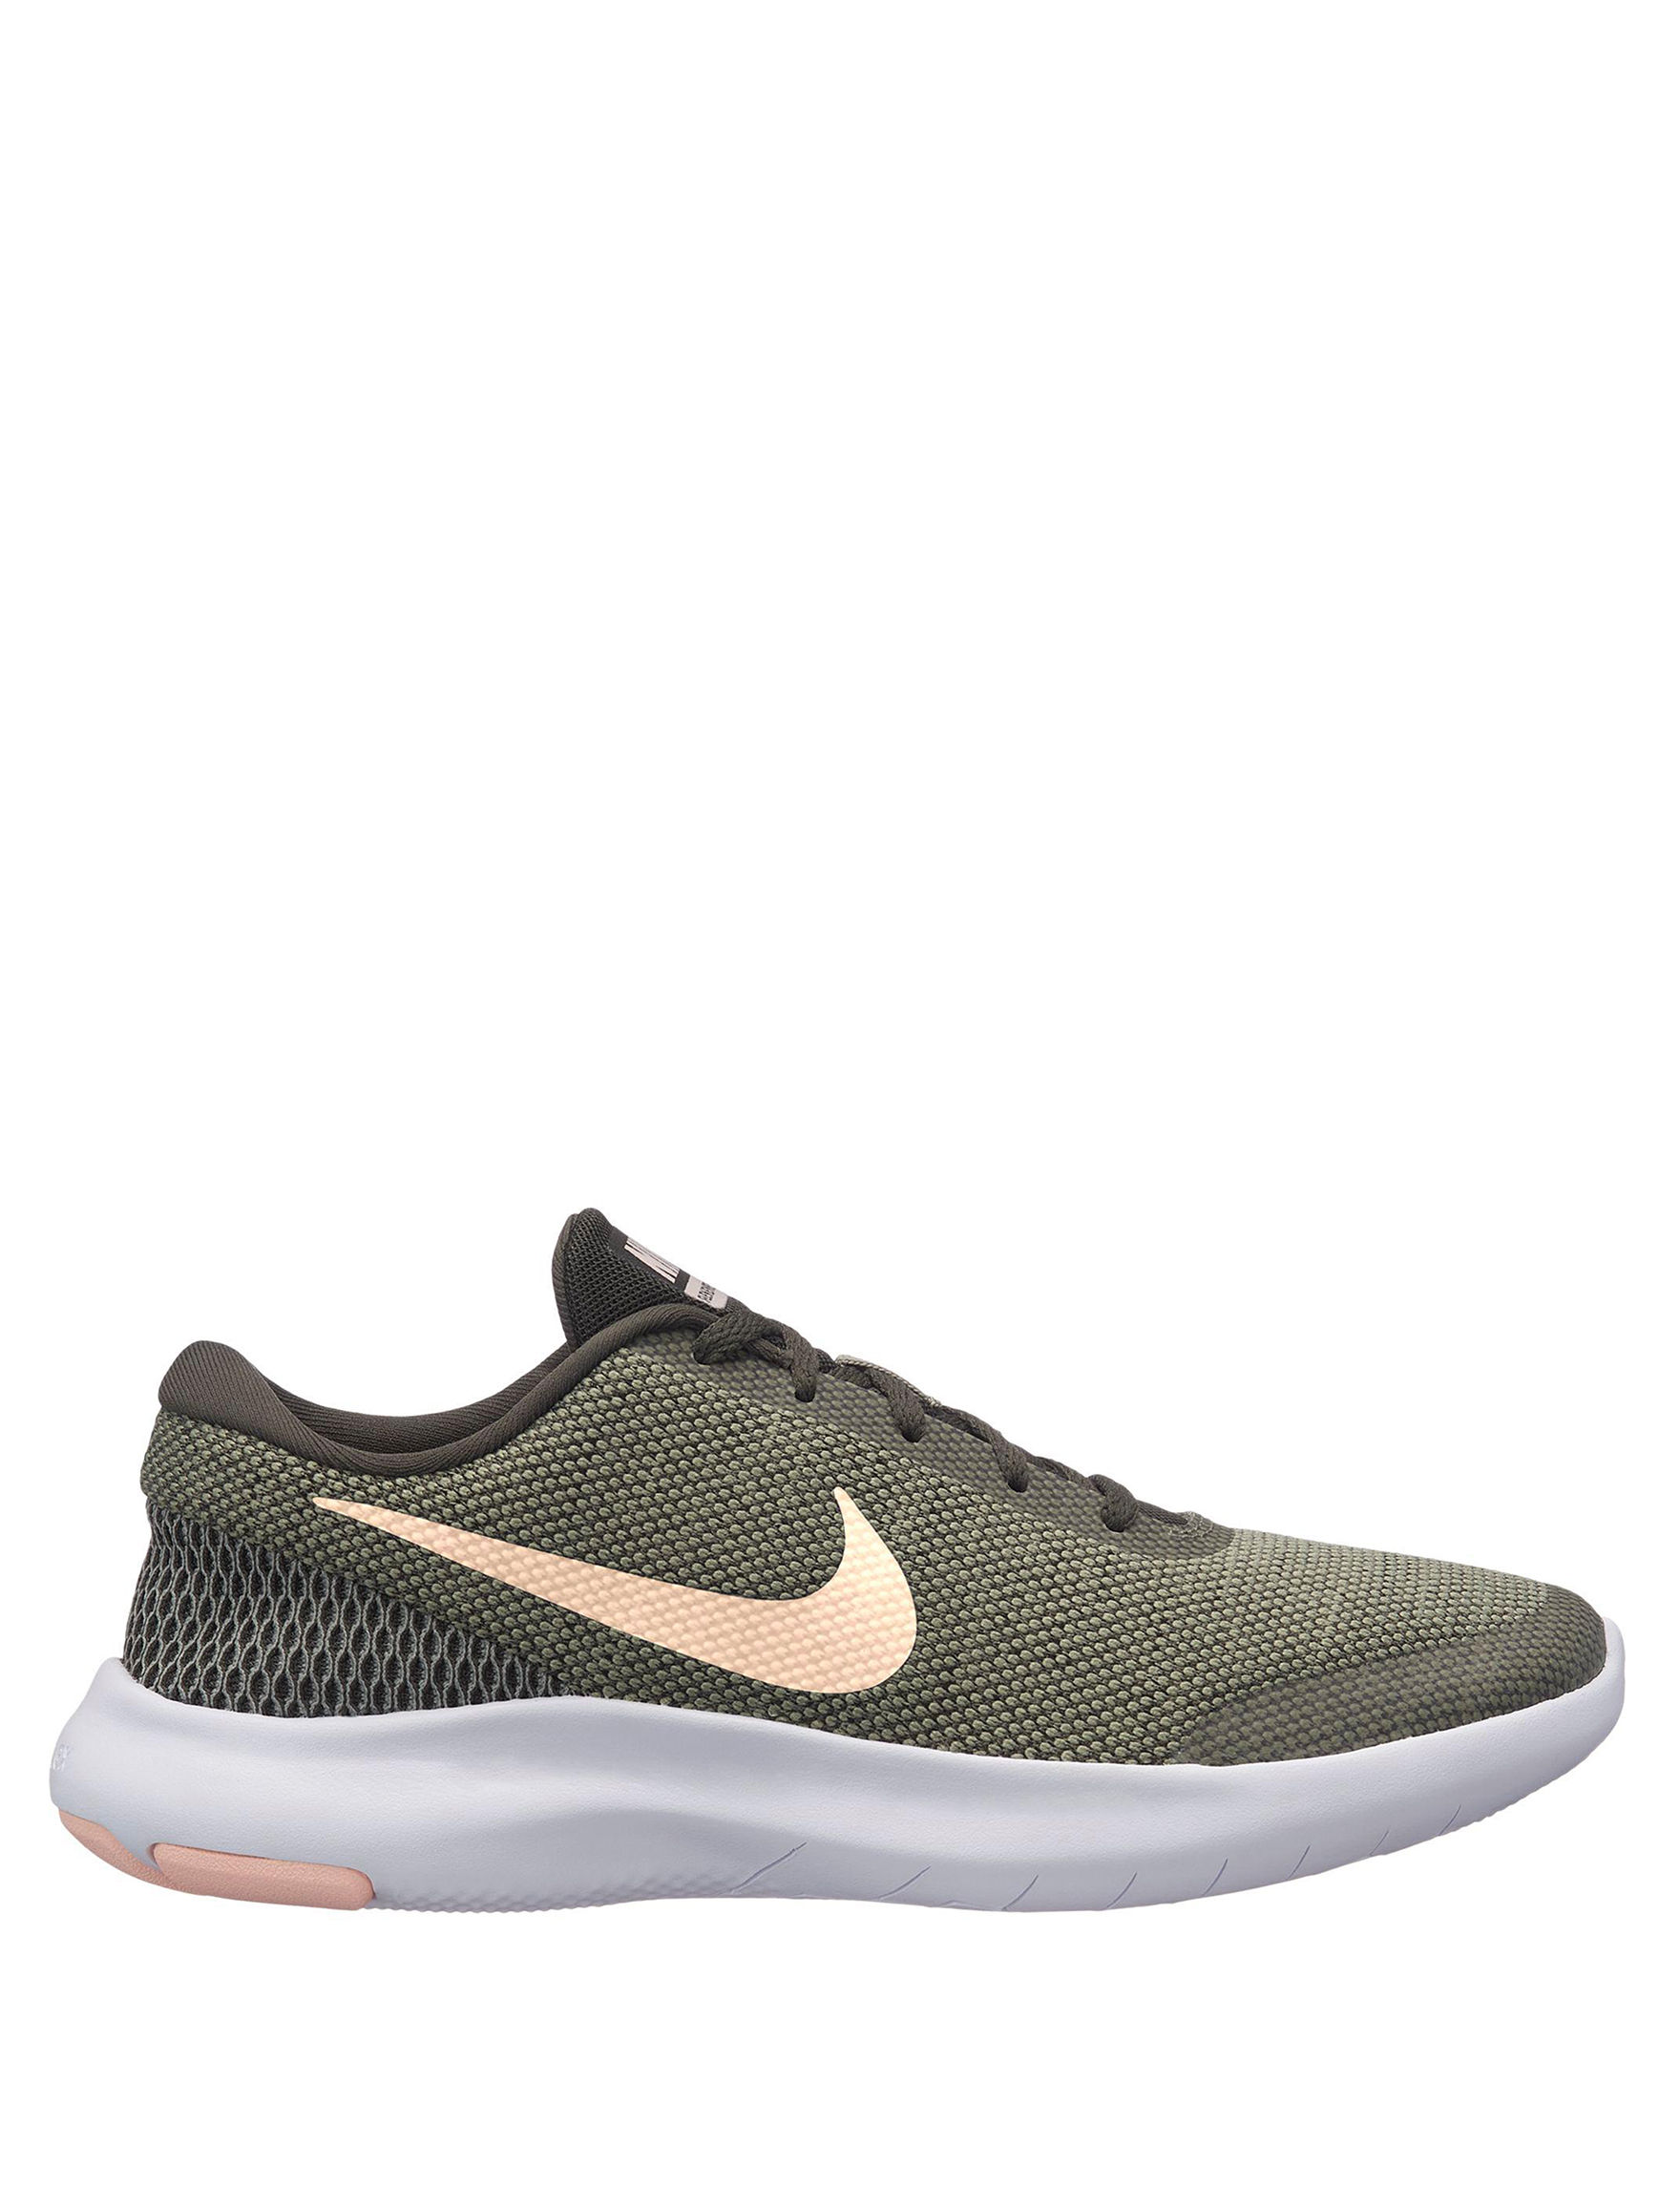 fe87adff0e3d6 Nike Women's Flex Experience RN 7 Running Shoes   Stage Stores